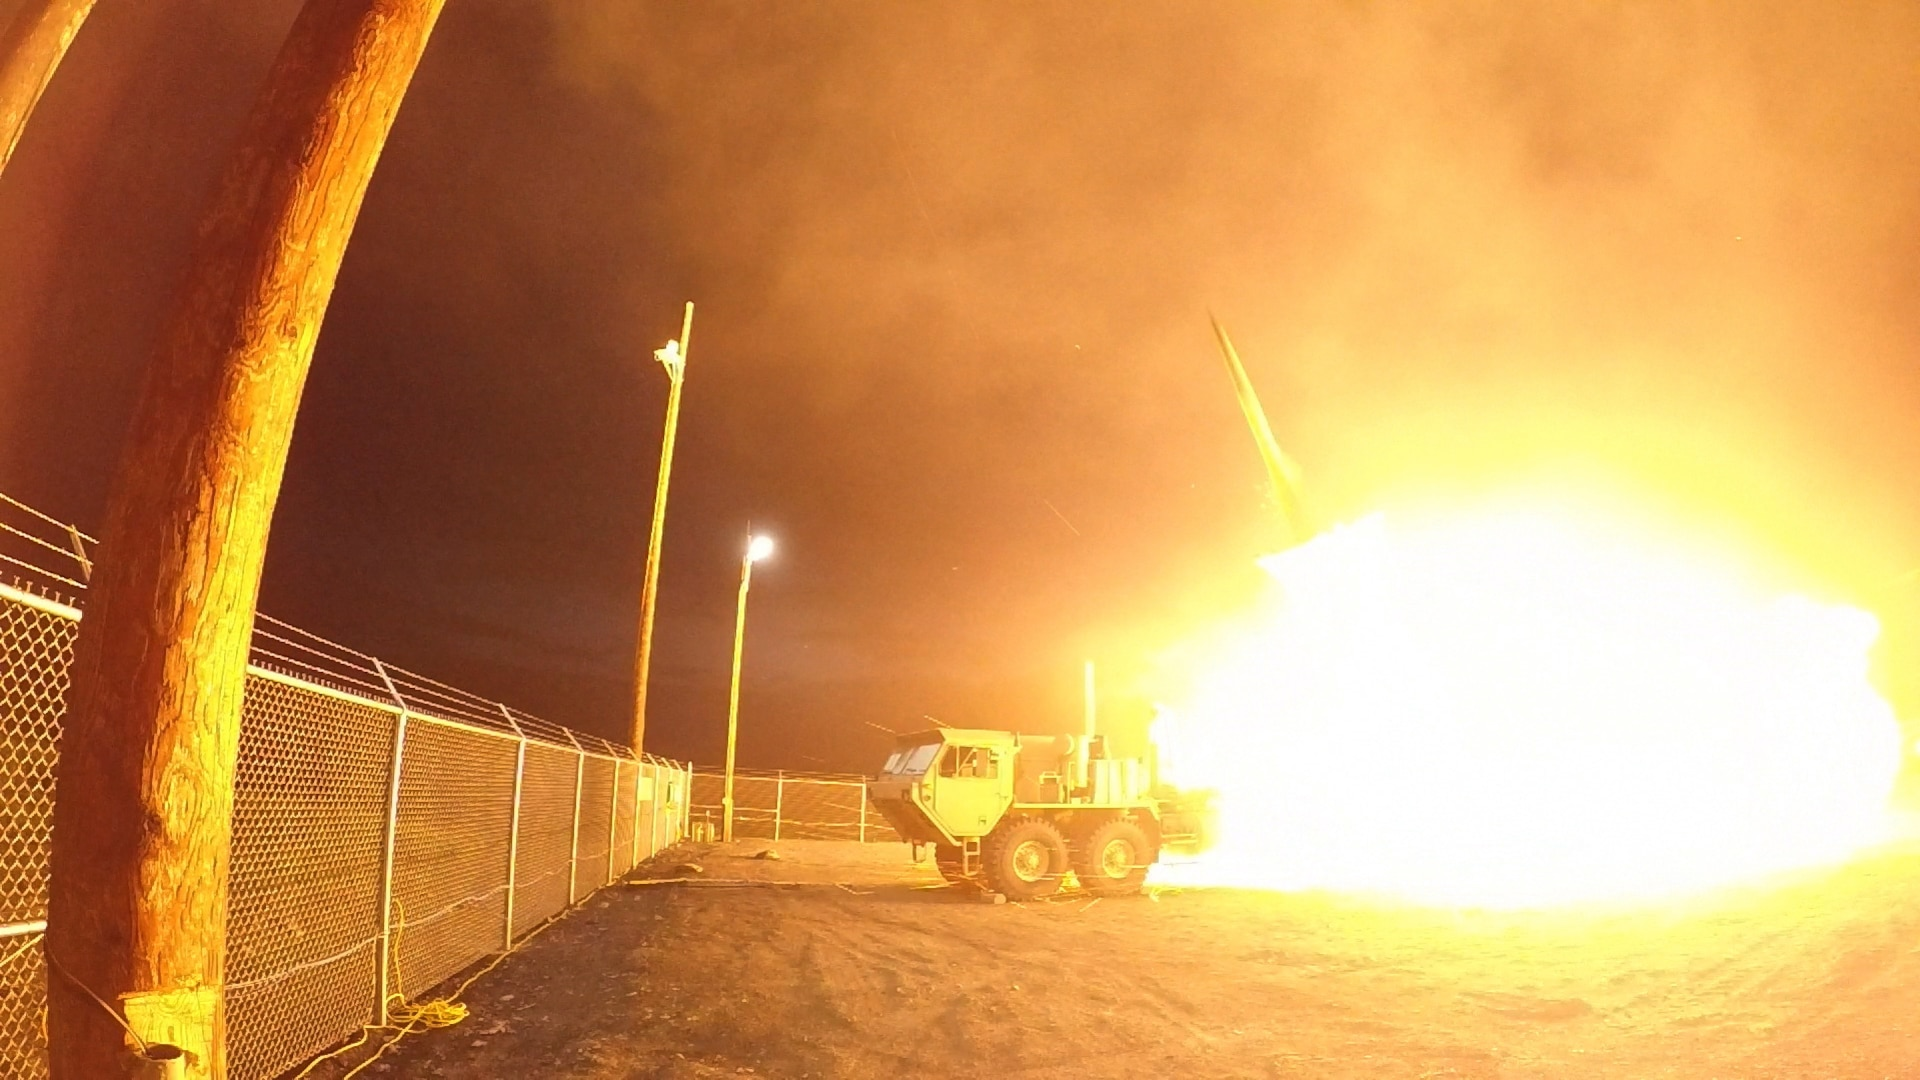 A Terminal High Altitude Area Defense (THAAD) interceptor is launched from the Pacific Spaceport Complex Alaska in Kodiak, Alaska, during Flight Experiment THAAD (FET)-01 on July 30, 2017 (EDT). During the test, the THAAD weapon system successfully intercepted an air-launched, medium-range ballistic missile (MRBM) target.